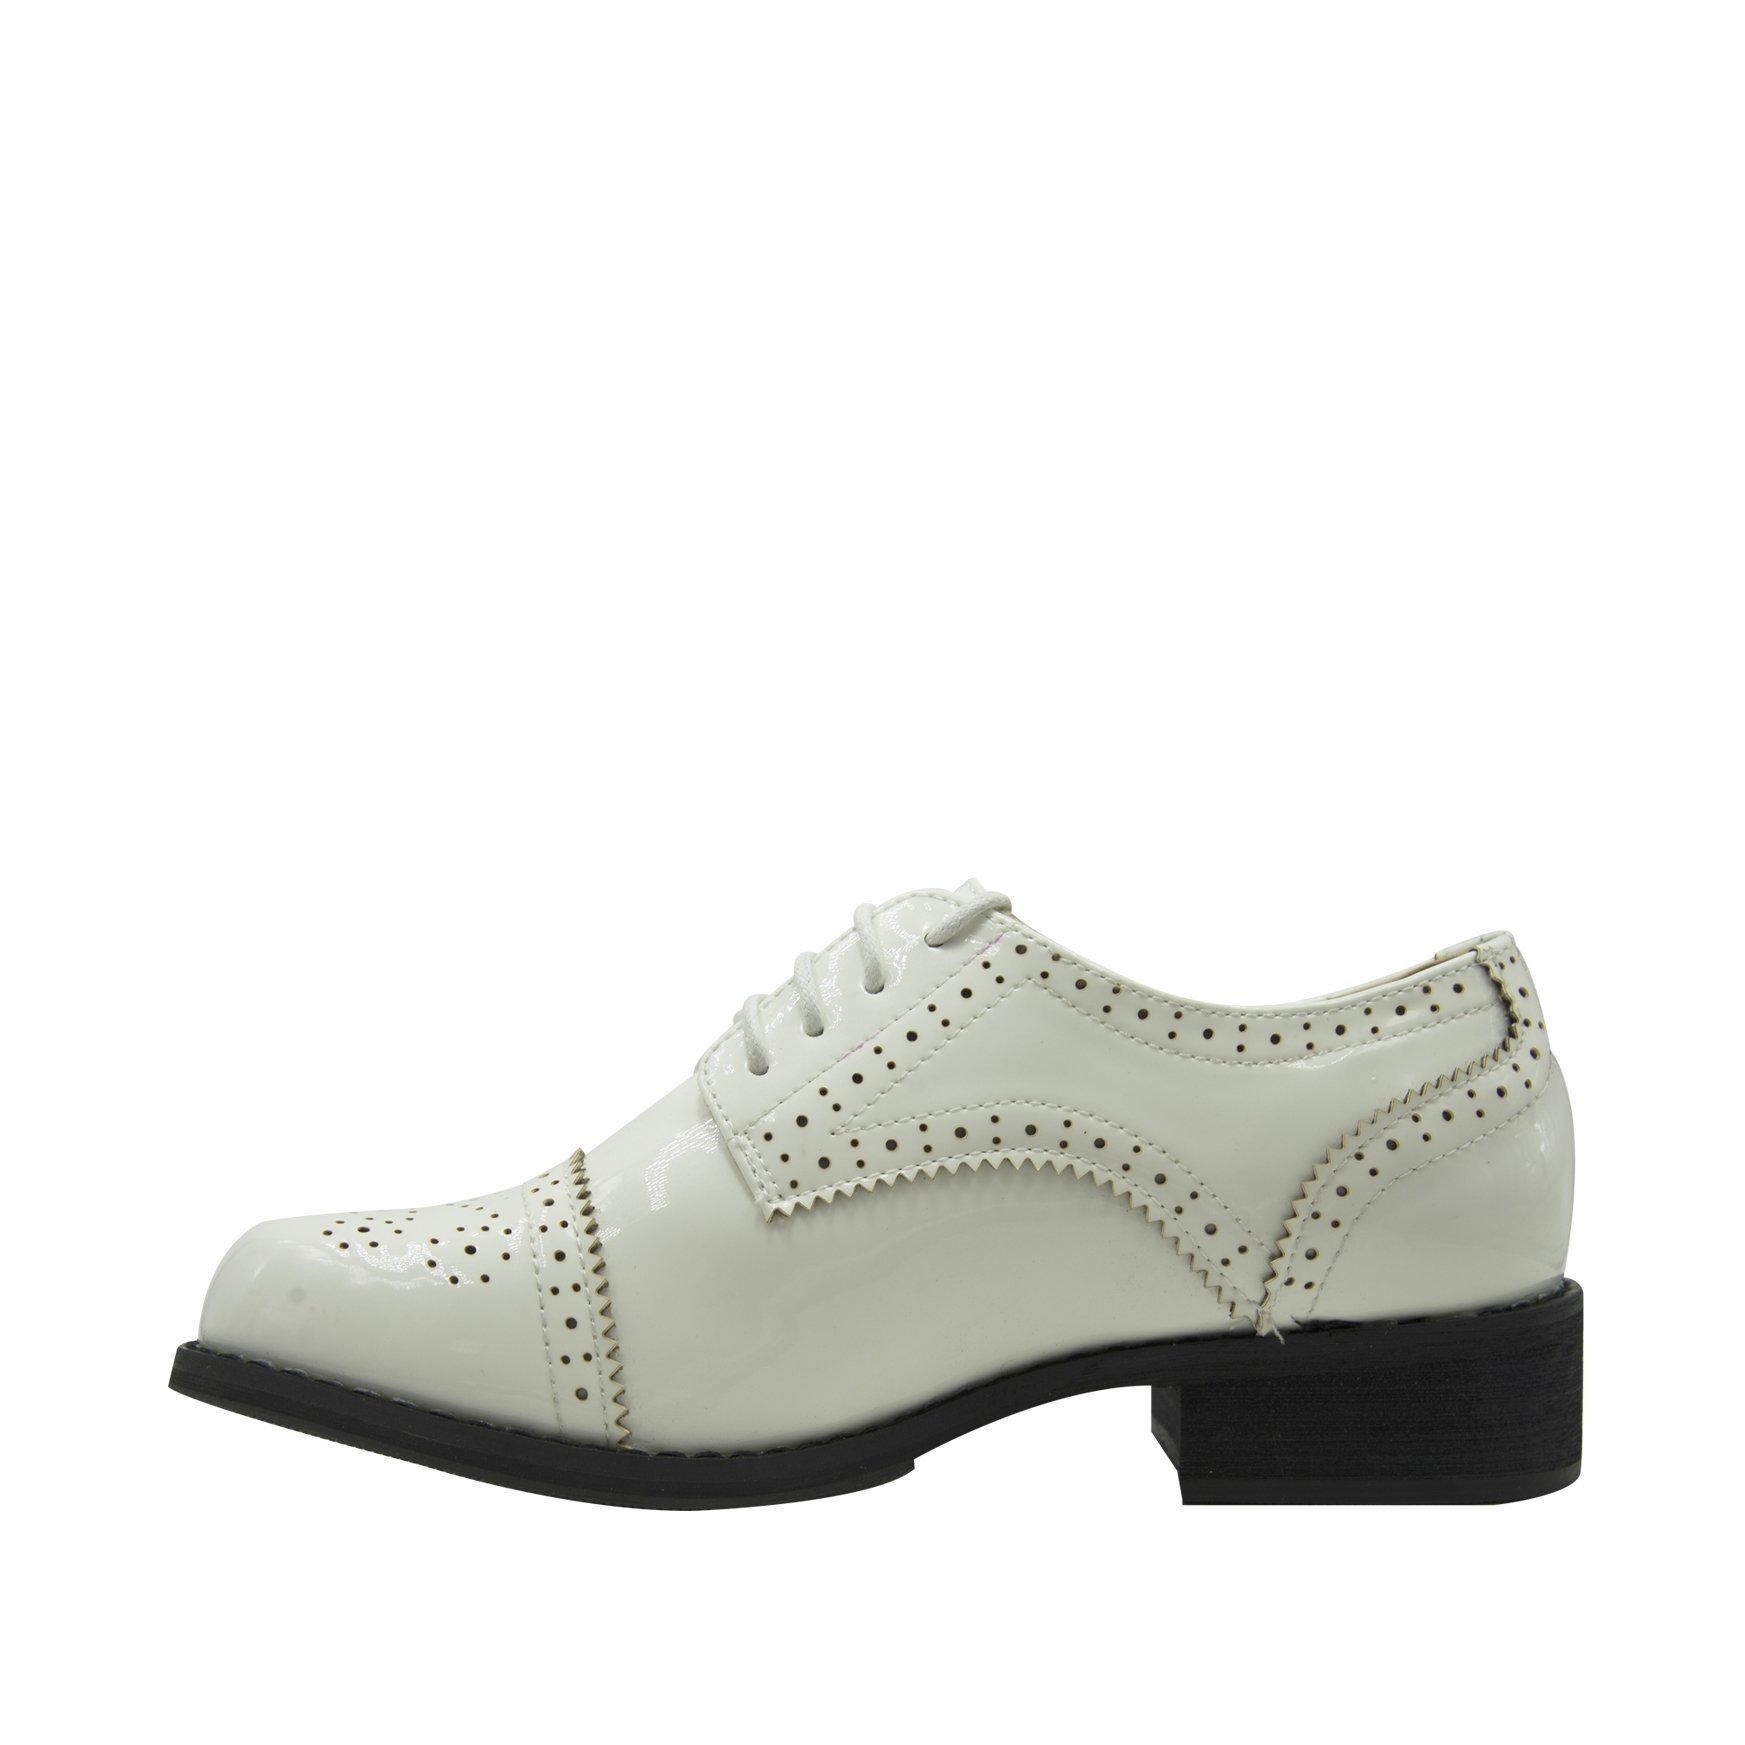 GottaBe Womens Perforated Lace-up White Leather Oxfords Shoes - Oxfords Shoes Women - Vintage Oxford Shoes(9) by GottaBe (Image #2)